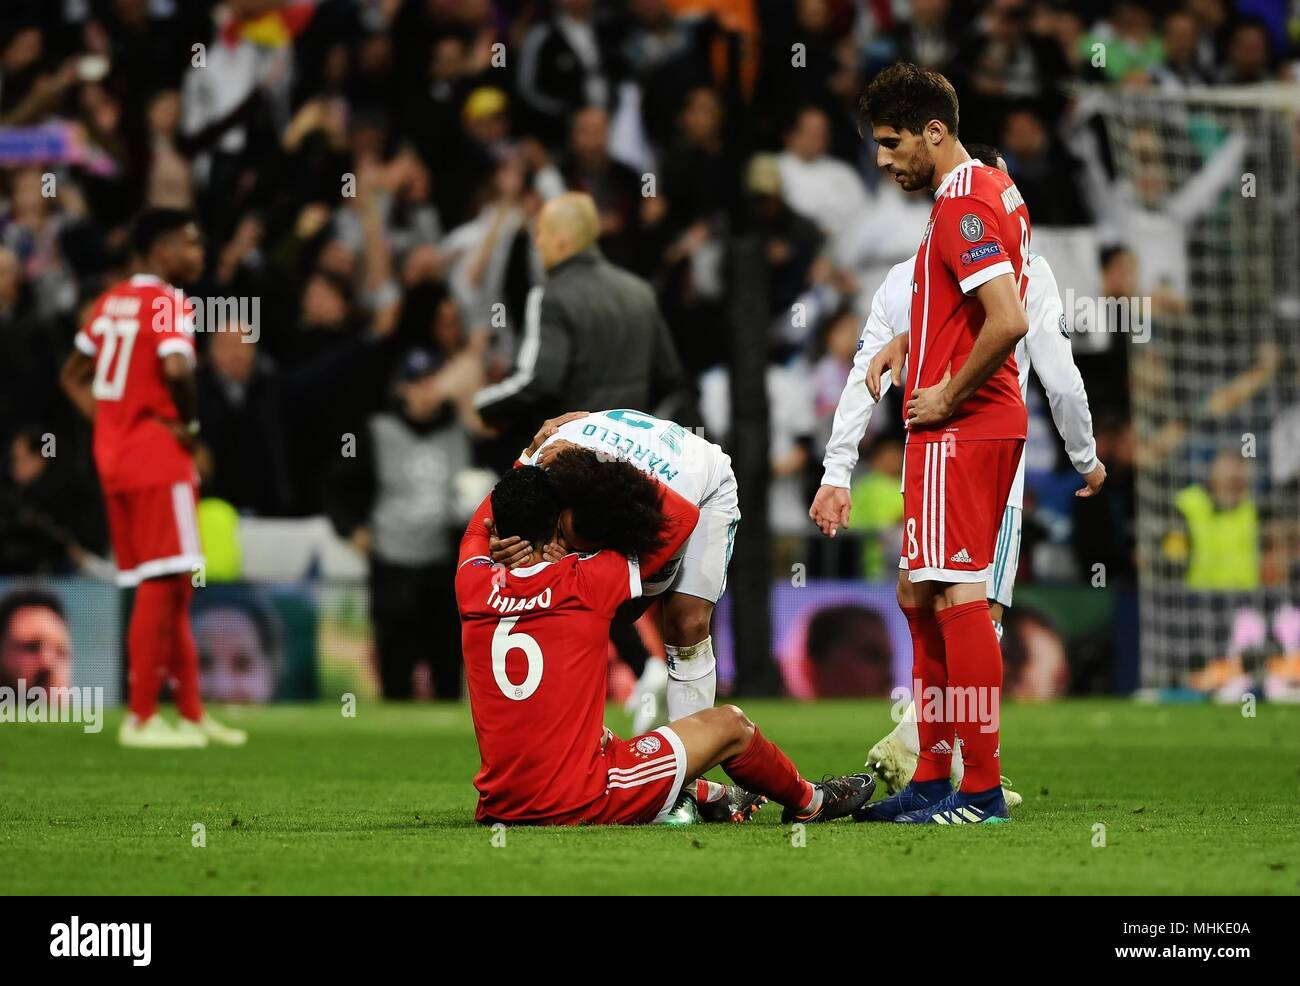 Madrid, Spain. 1st May, 2018. Real Madrid's Marcelo (C Rear) kisses Bayern Munchen's Thiago Alcantara after a UEFA Champions League semifinal second leg soccer match between?Spanish team Real Madrid and German team Bayern Munchen in Madrid, Spain, on May 1, 2018. The match ended 2-2. Real Madrid advanced to the final with 4-3 on aggregate. Credit: Guo Qiuda/Xinhua/Alamy Live News - Stock Image